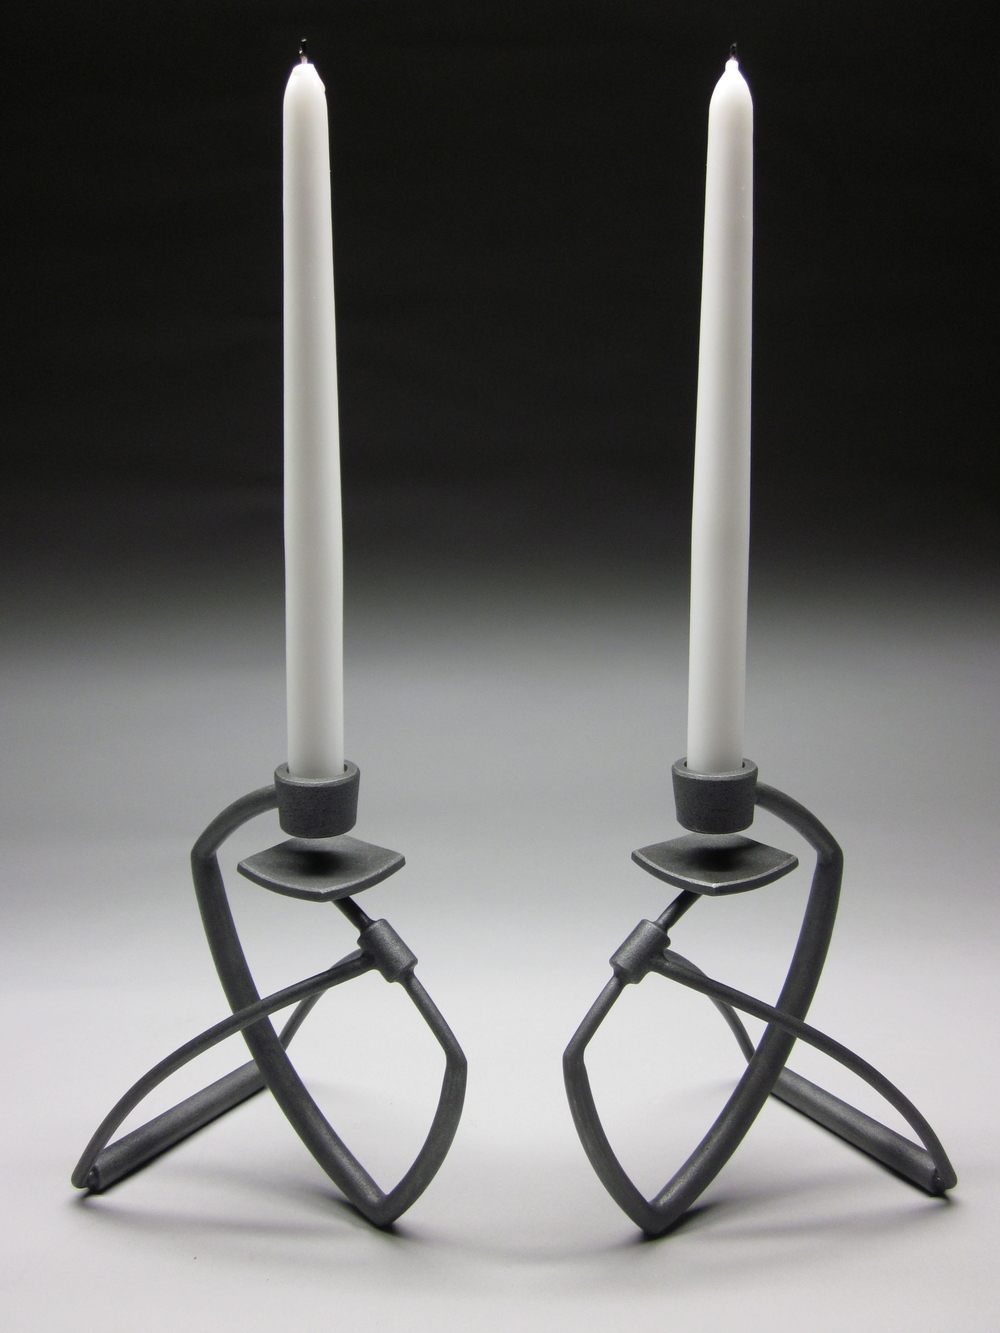 Connect Candlesticks by Greg Gehner